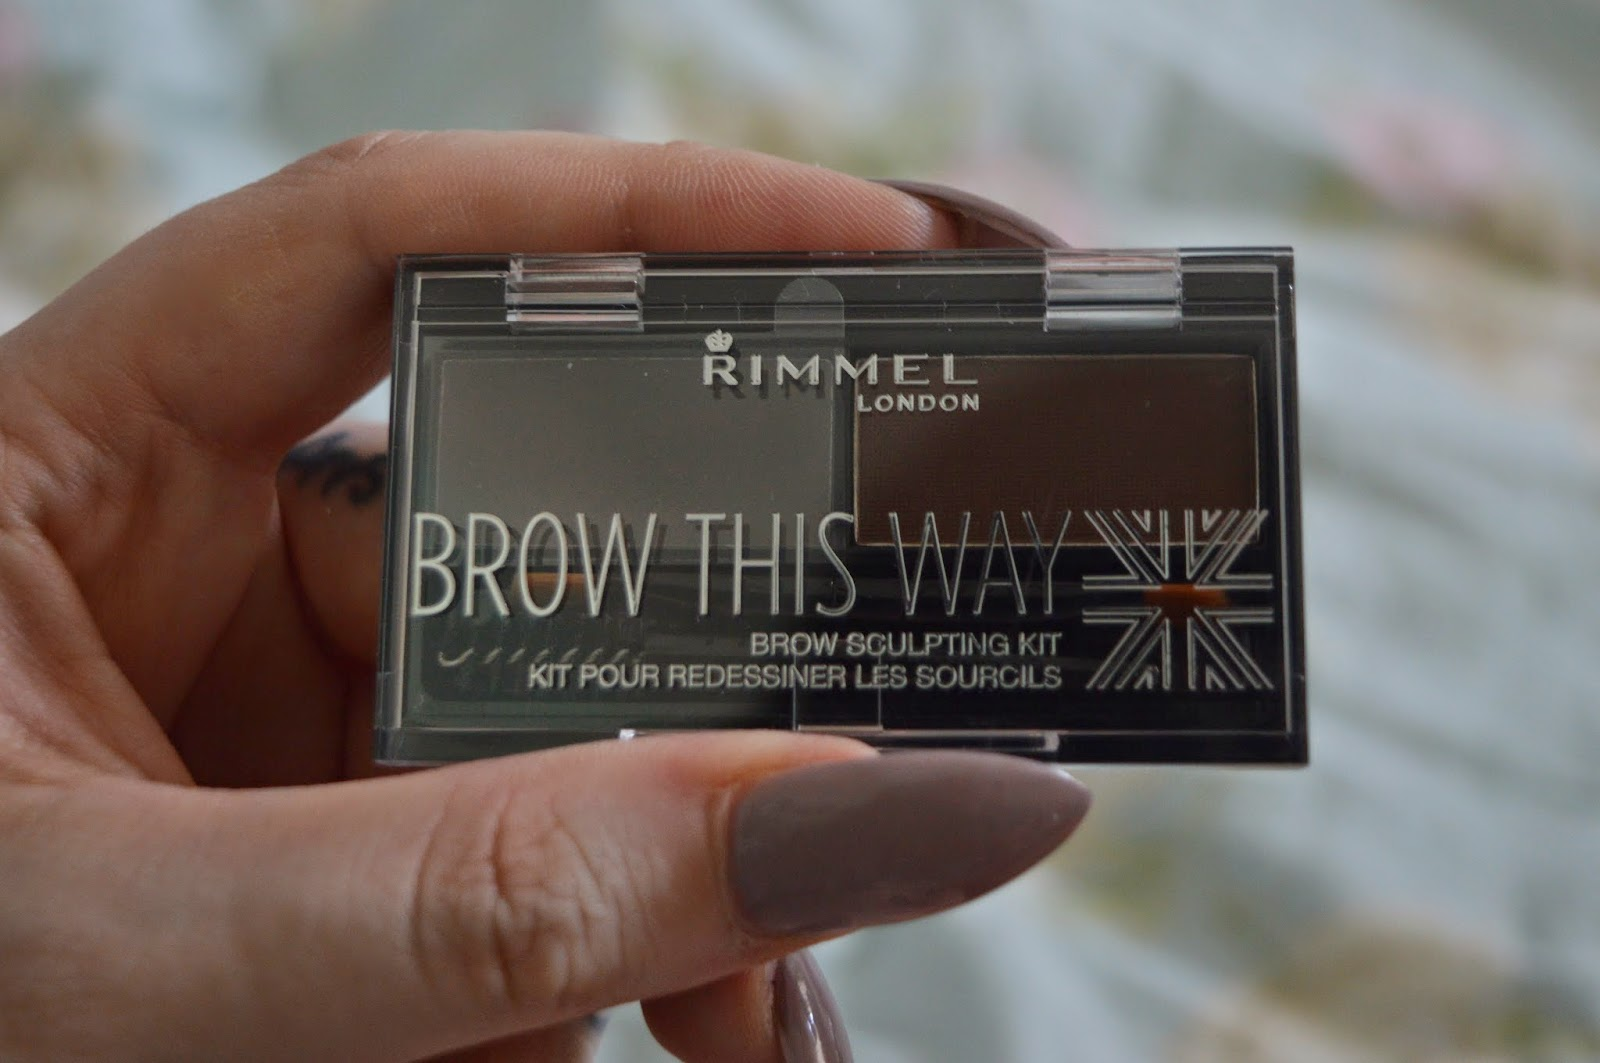 Brow this way review